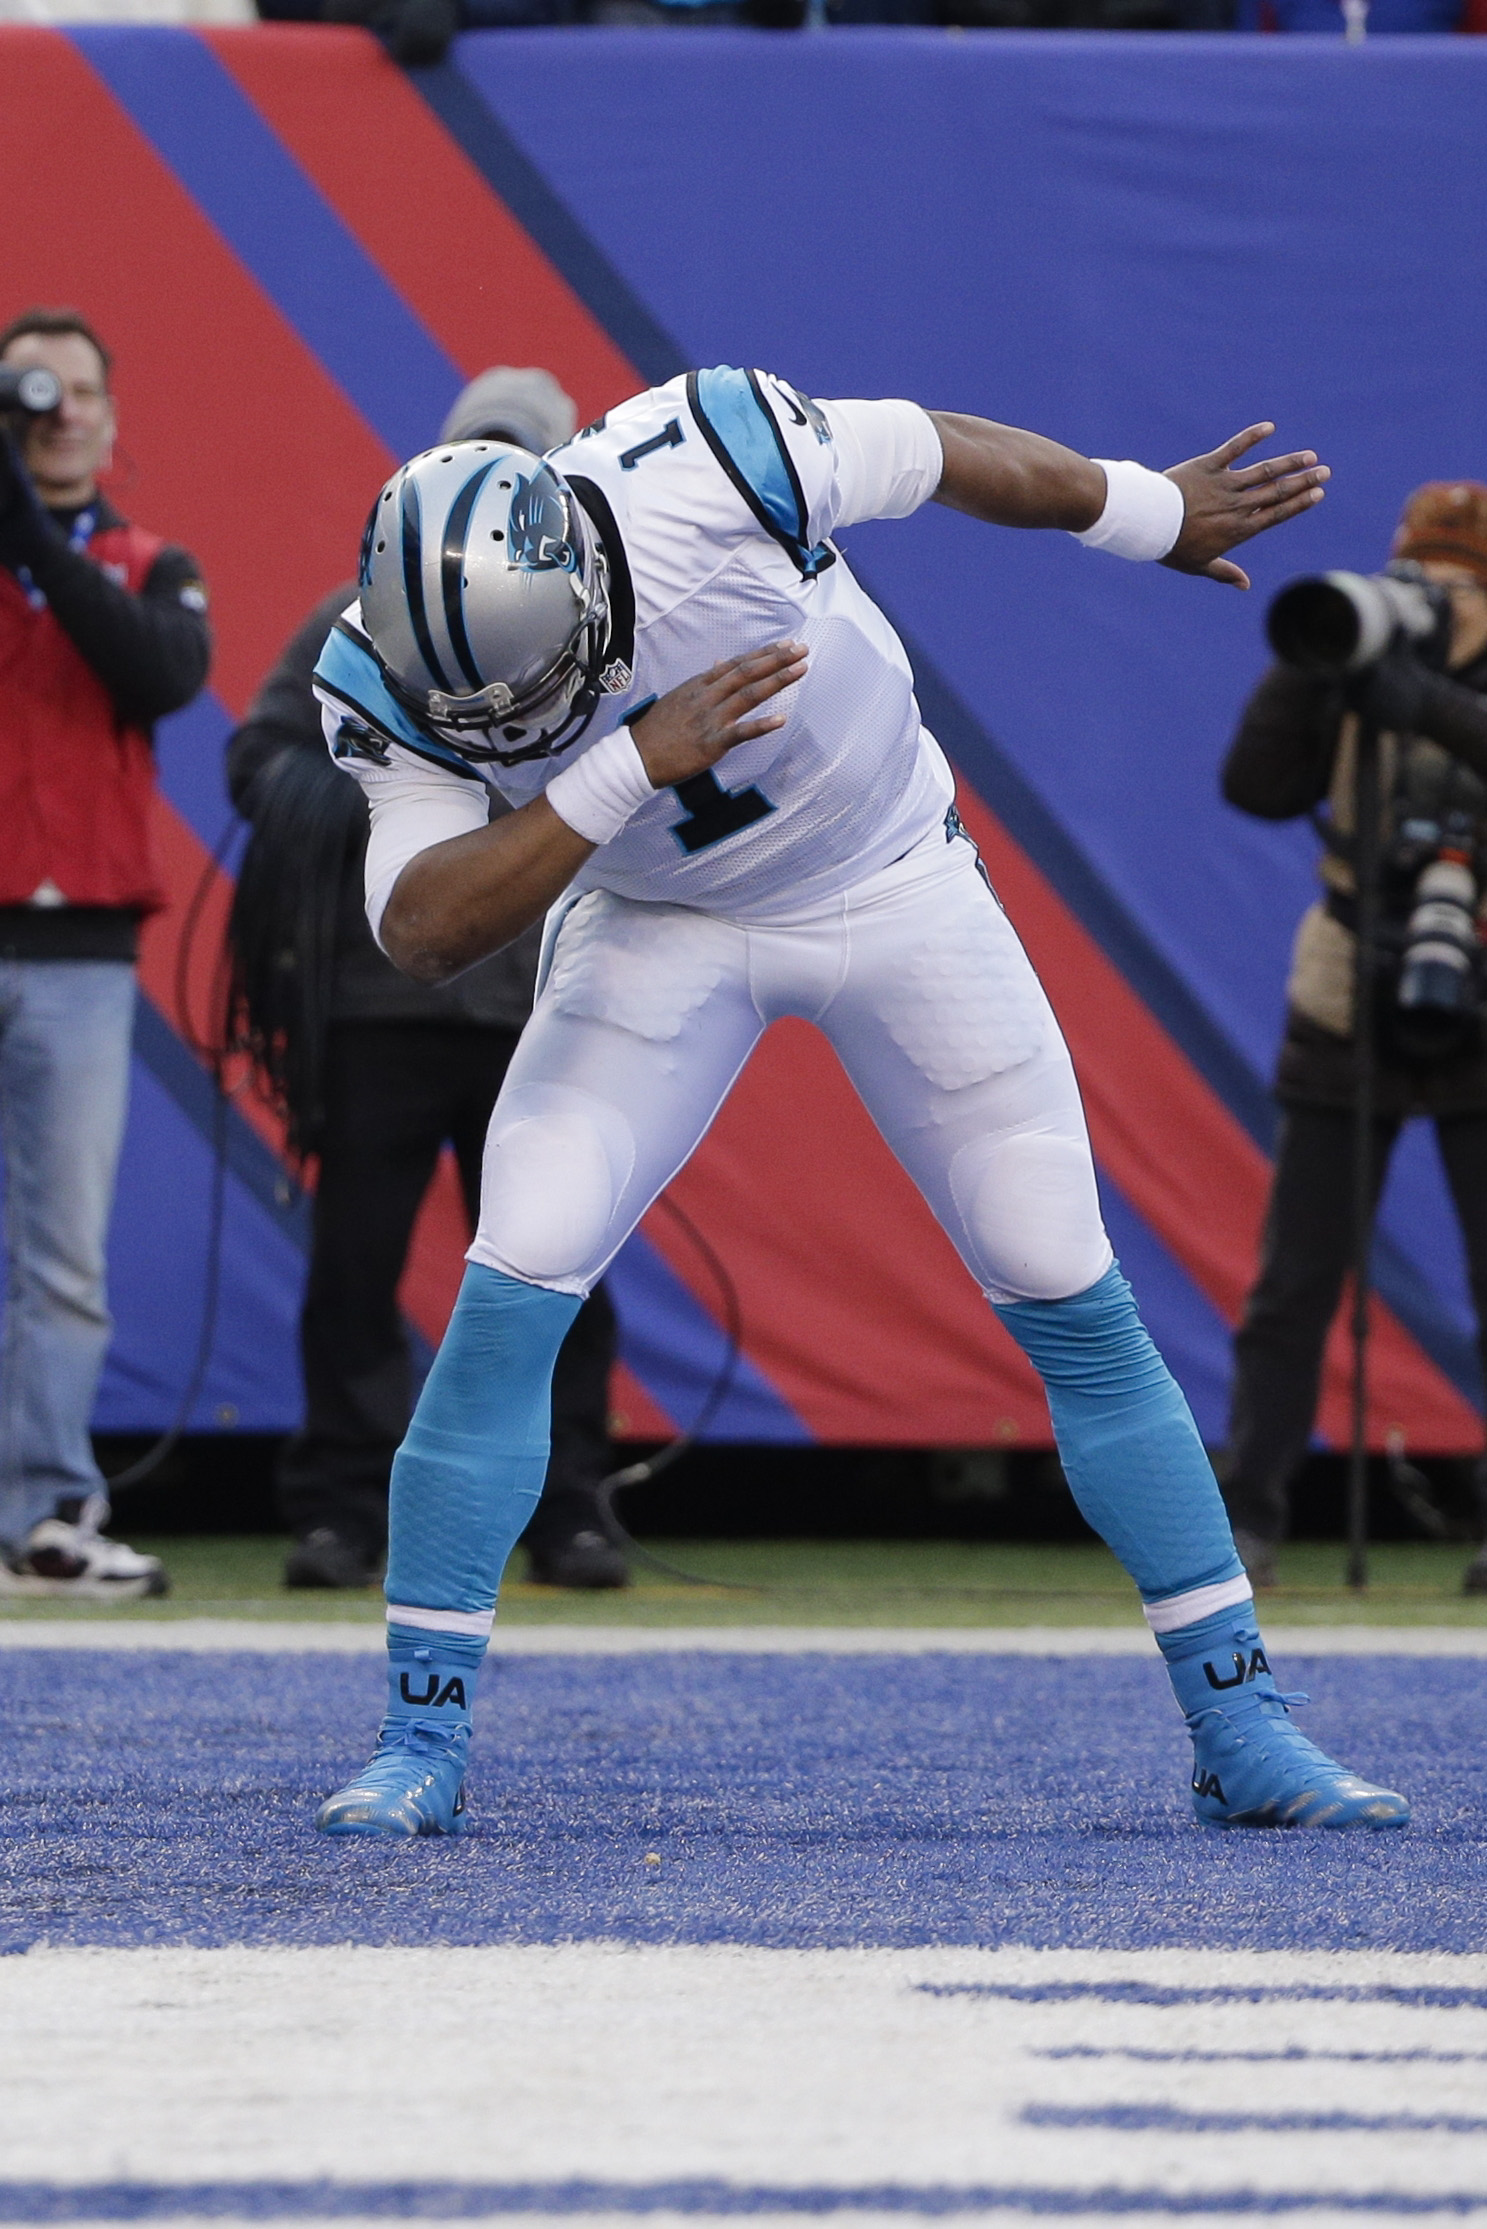 Carolina Panthers quarterback Cam Newton (1) celebrates after throwing a touchdown to Ted Ginn during the second half of an NFL football game against the New York Giants, Sunday, Dec. 20, 2015, in East Rutherford, N.J. (AP Photo/Julie Jacobson)